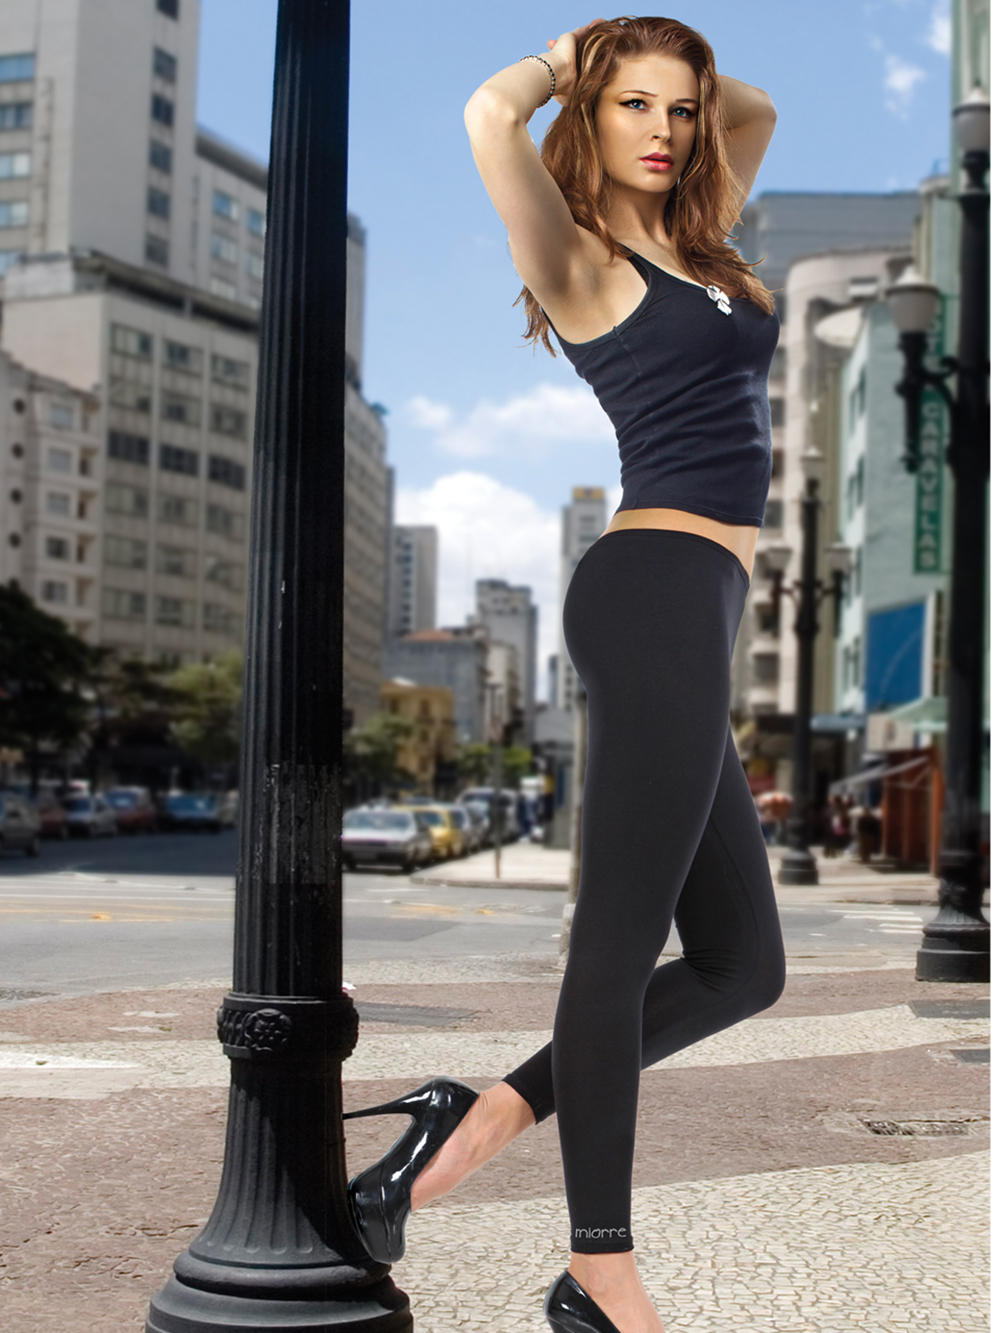 Seamless High Waisted Casual Leggings, Sexy Pants For Women, Pants For Daily Use, Flexible Street & Home Wear, Fast Dry Leggings